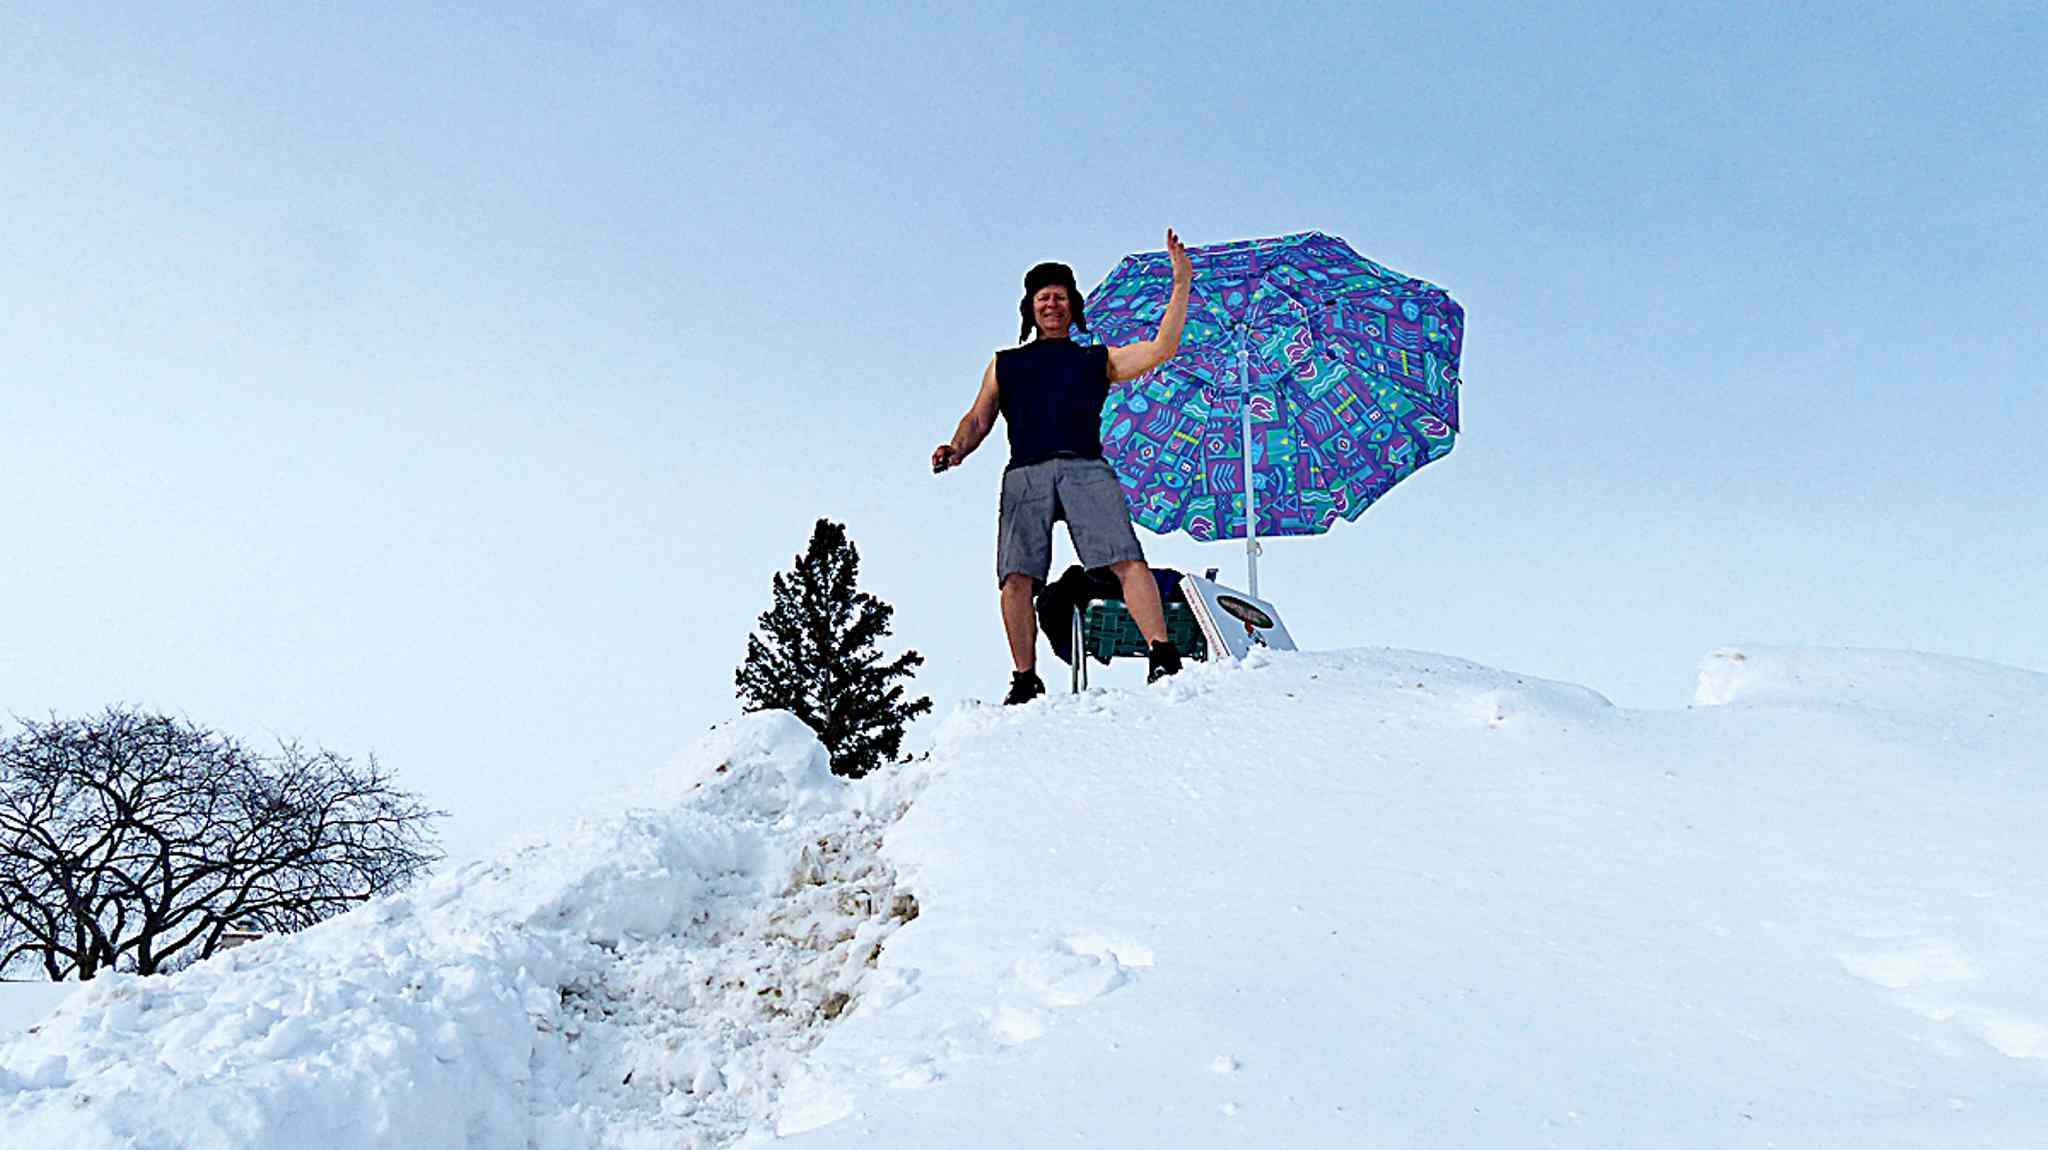 Norm Grywinski used a remote to take this photo of himself enjoying the first warm weekend of spring atop the snow hill in his front yard.